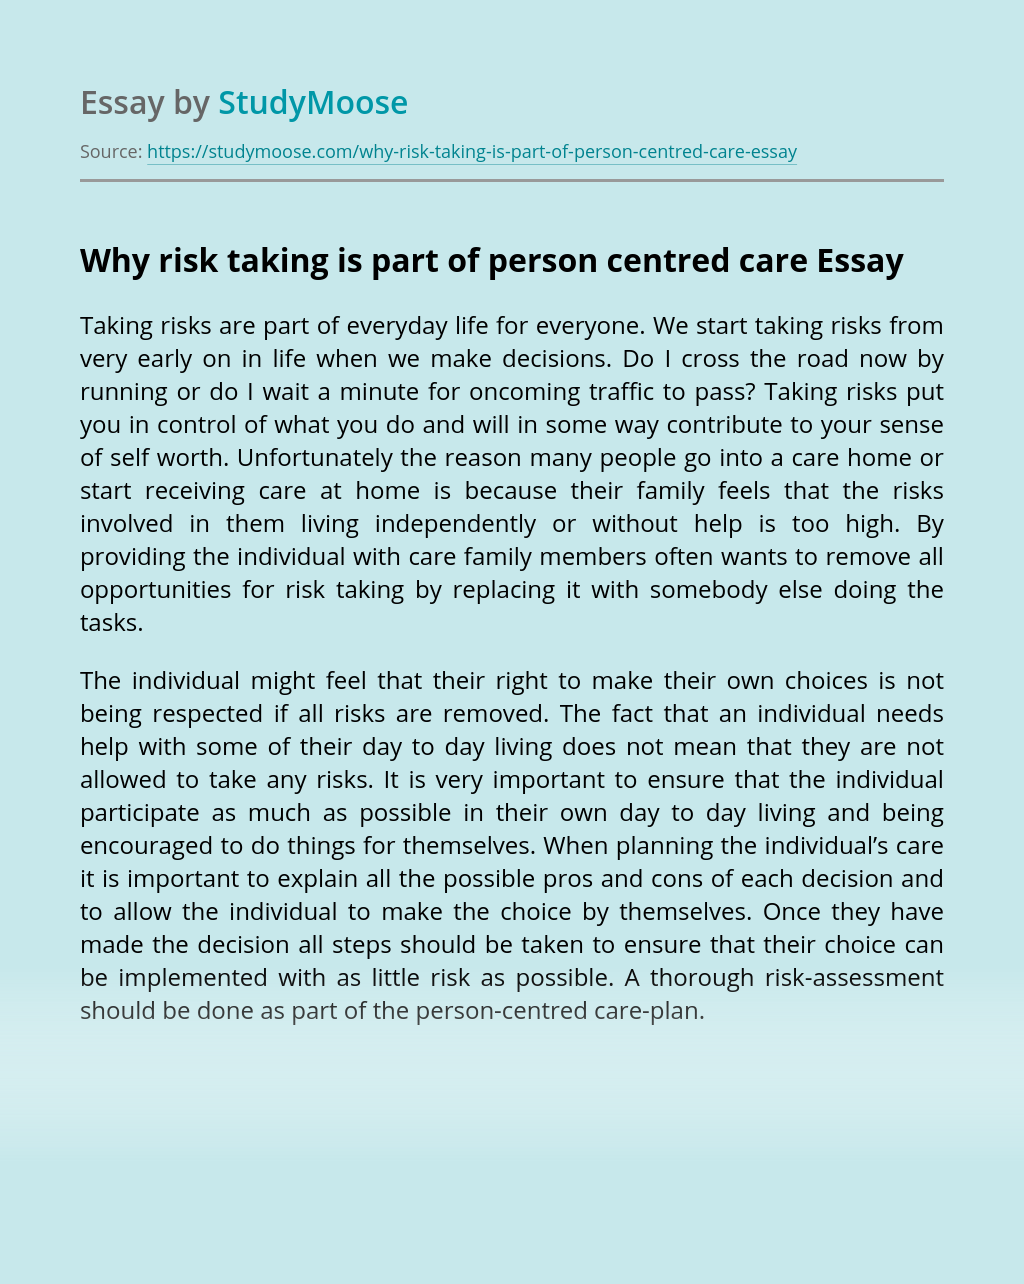 Why risk taking is part of person centred care